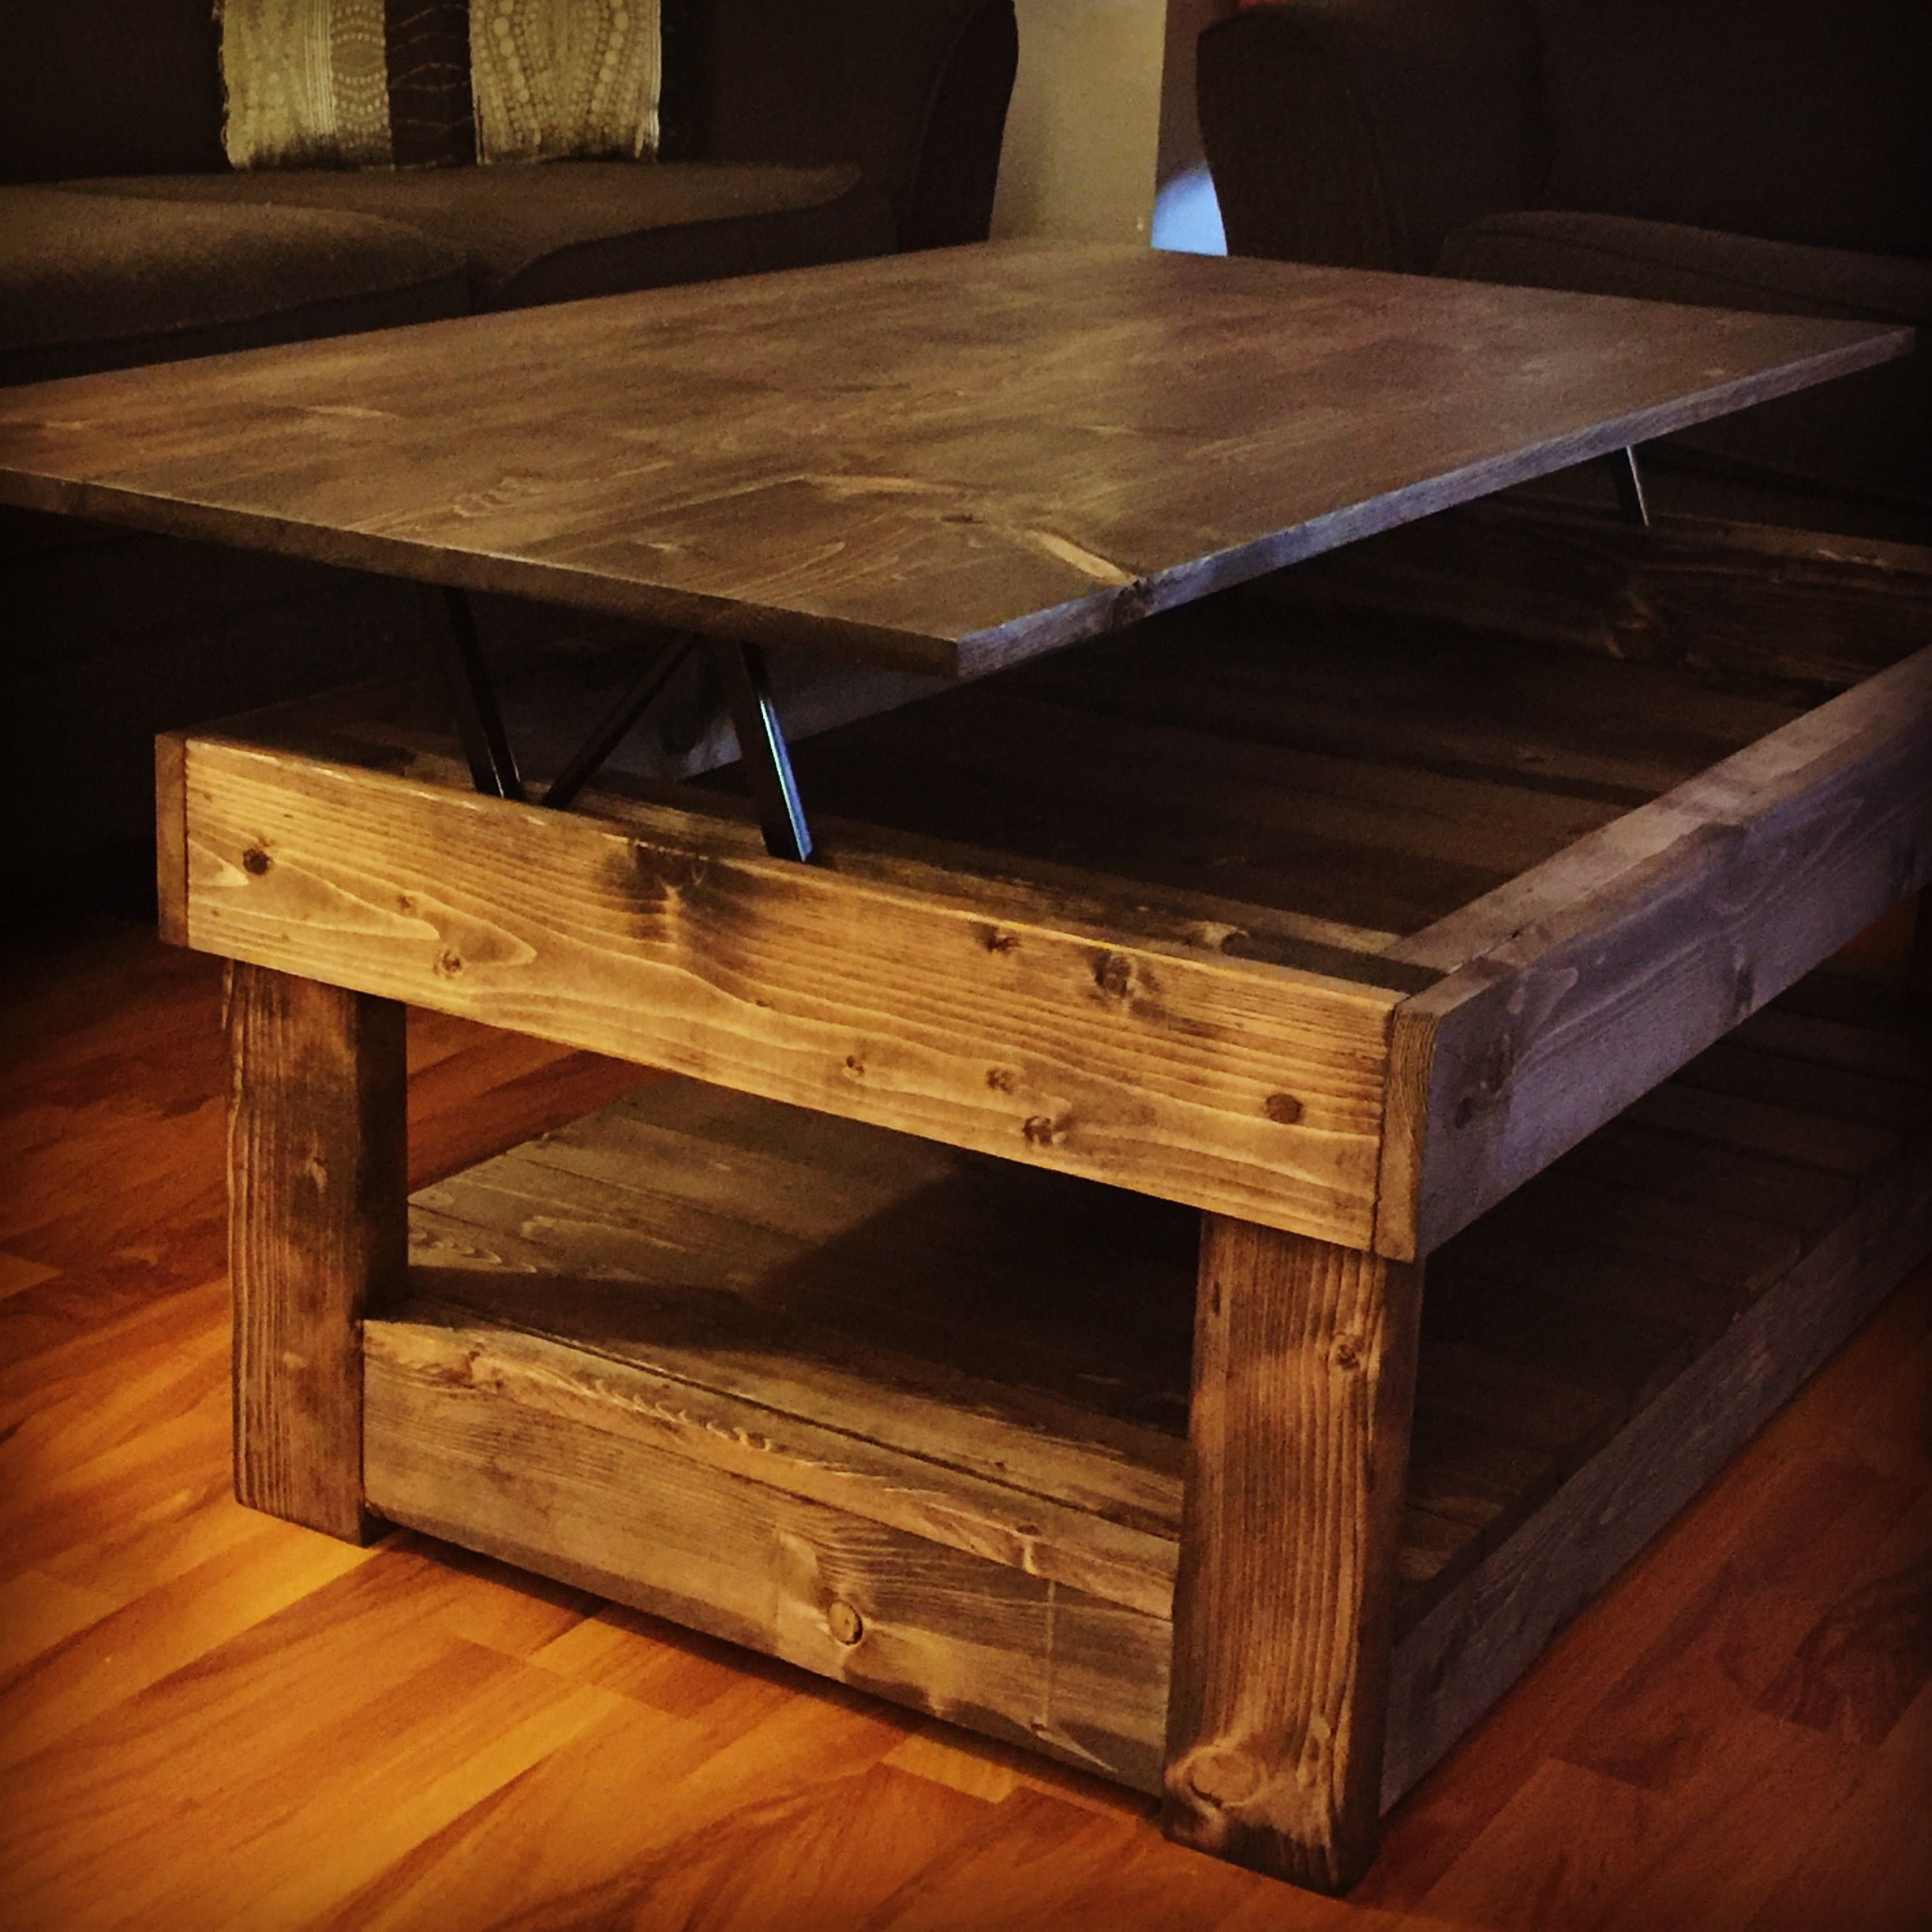 Lift Top Coffee Table Plans Free Rustic Lift Top Coffee Table Projects To Try Maybe